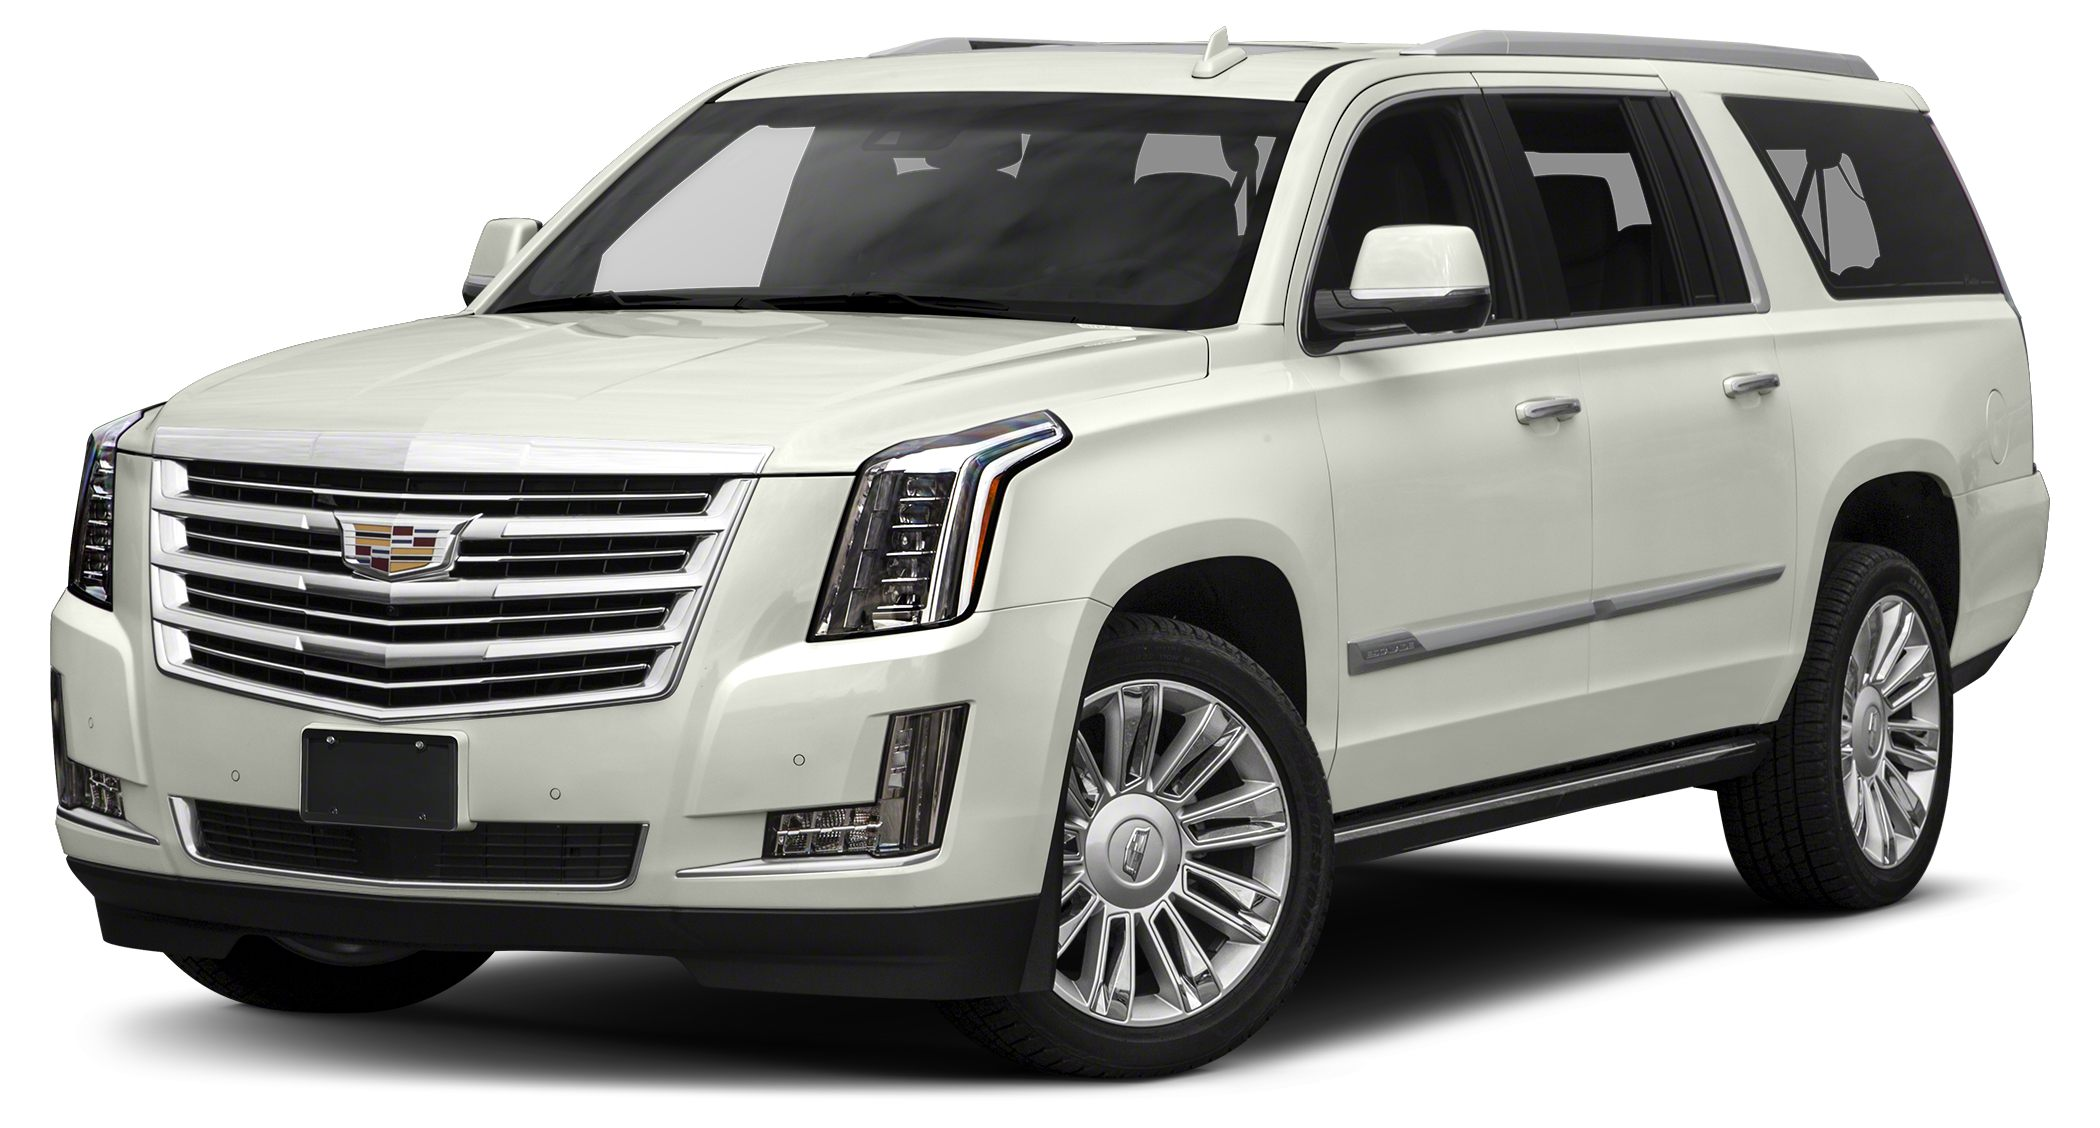 2016 Cadillac Escalade ESV Platinum The well-recognized Escalade has been among the Kings of the S